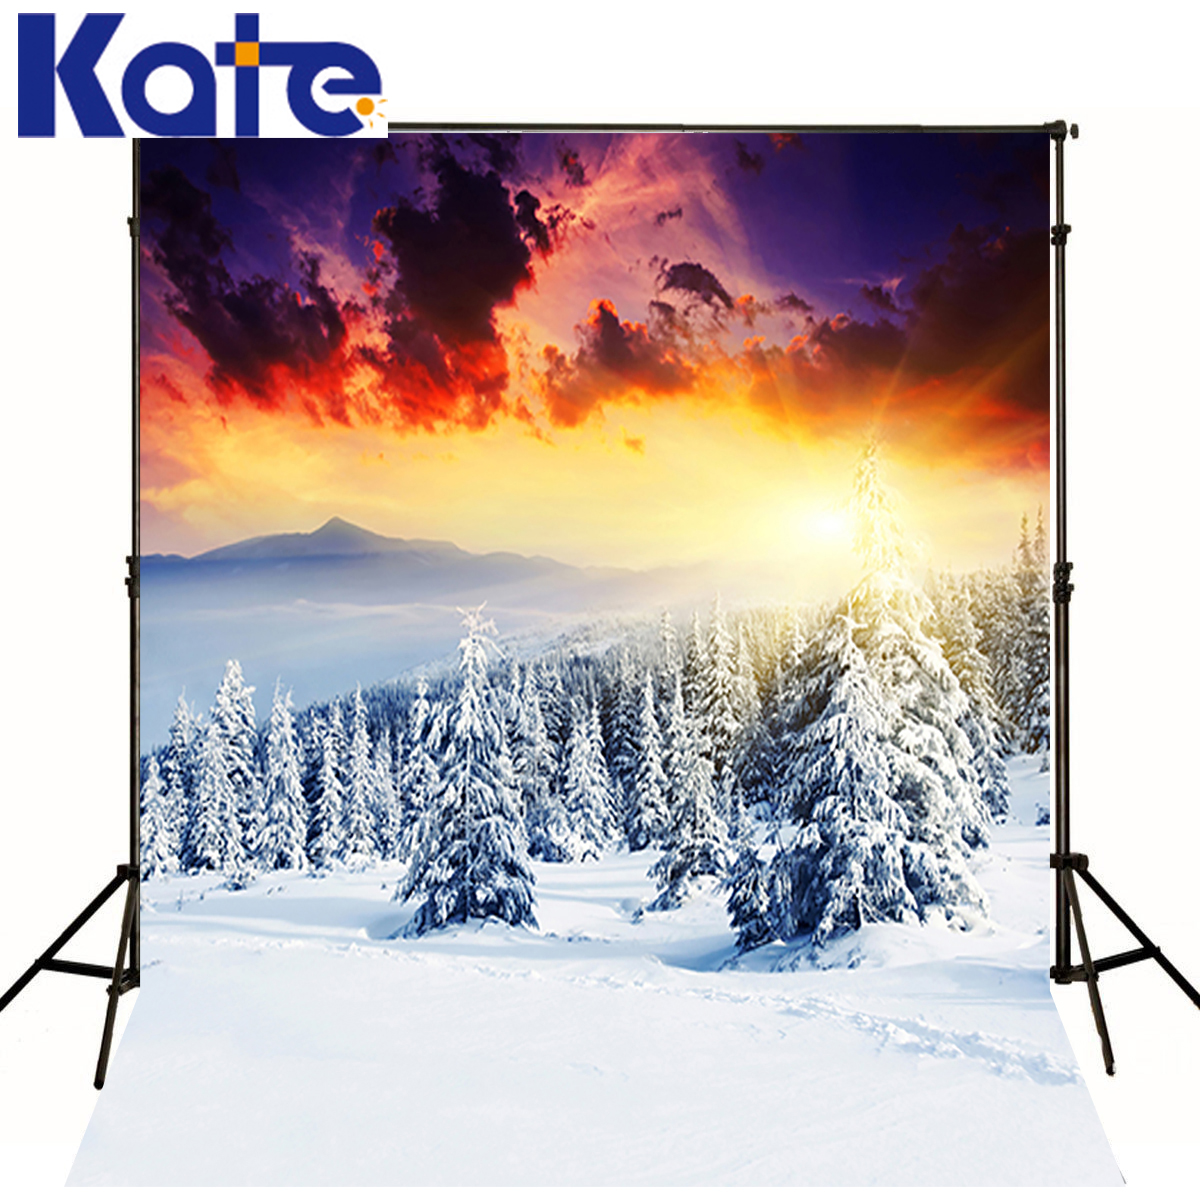 KATE Winter Background Photography Sunshine Natural Sunset Background Scenery Snow Forest Backgrounds For Photo Shoot Studio kate photo backdrops winter snow tree forest scenery backgrounds white cold world background christmas backdrop for photo shoot